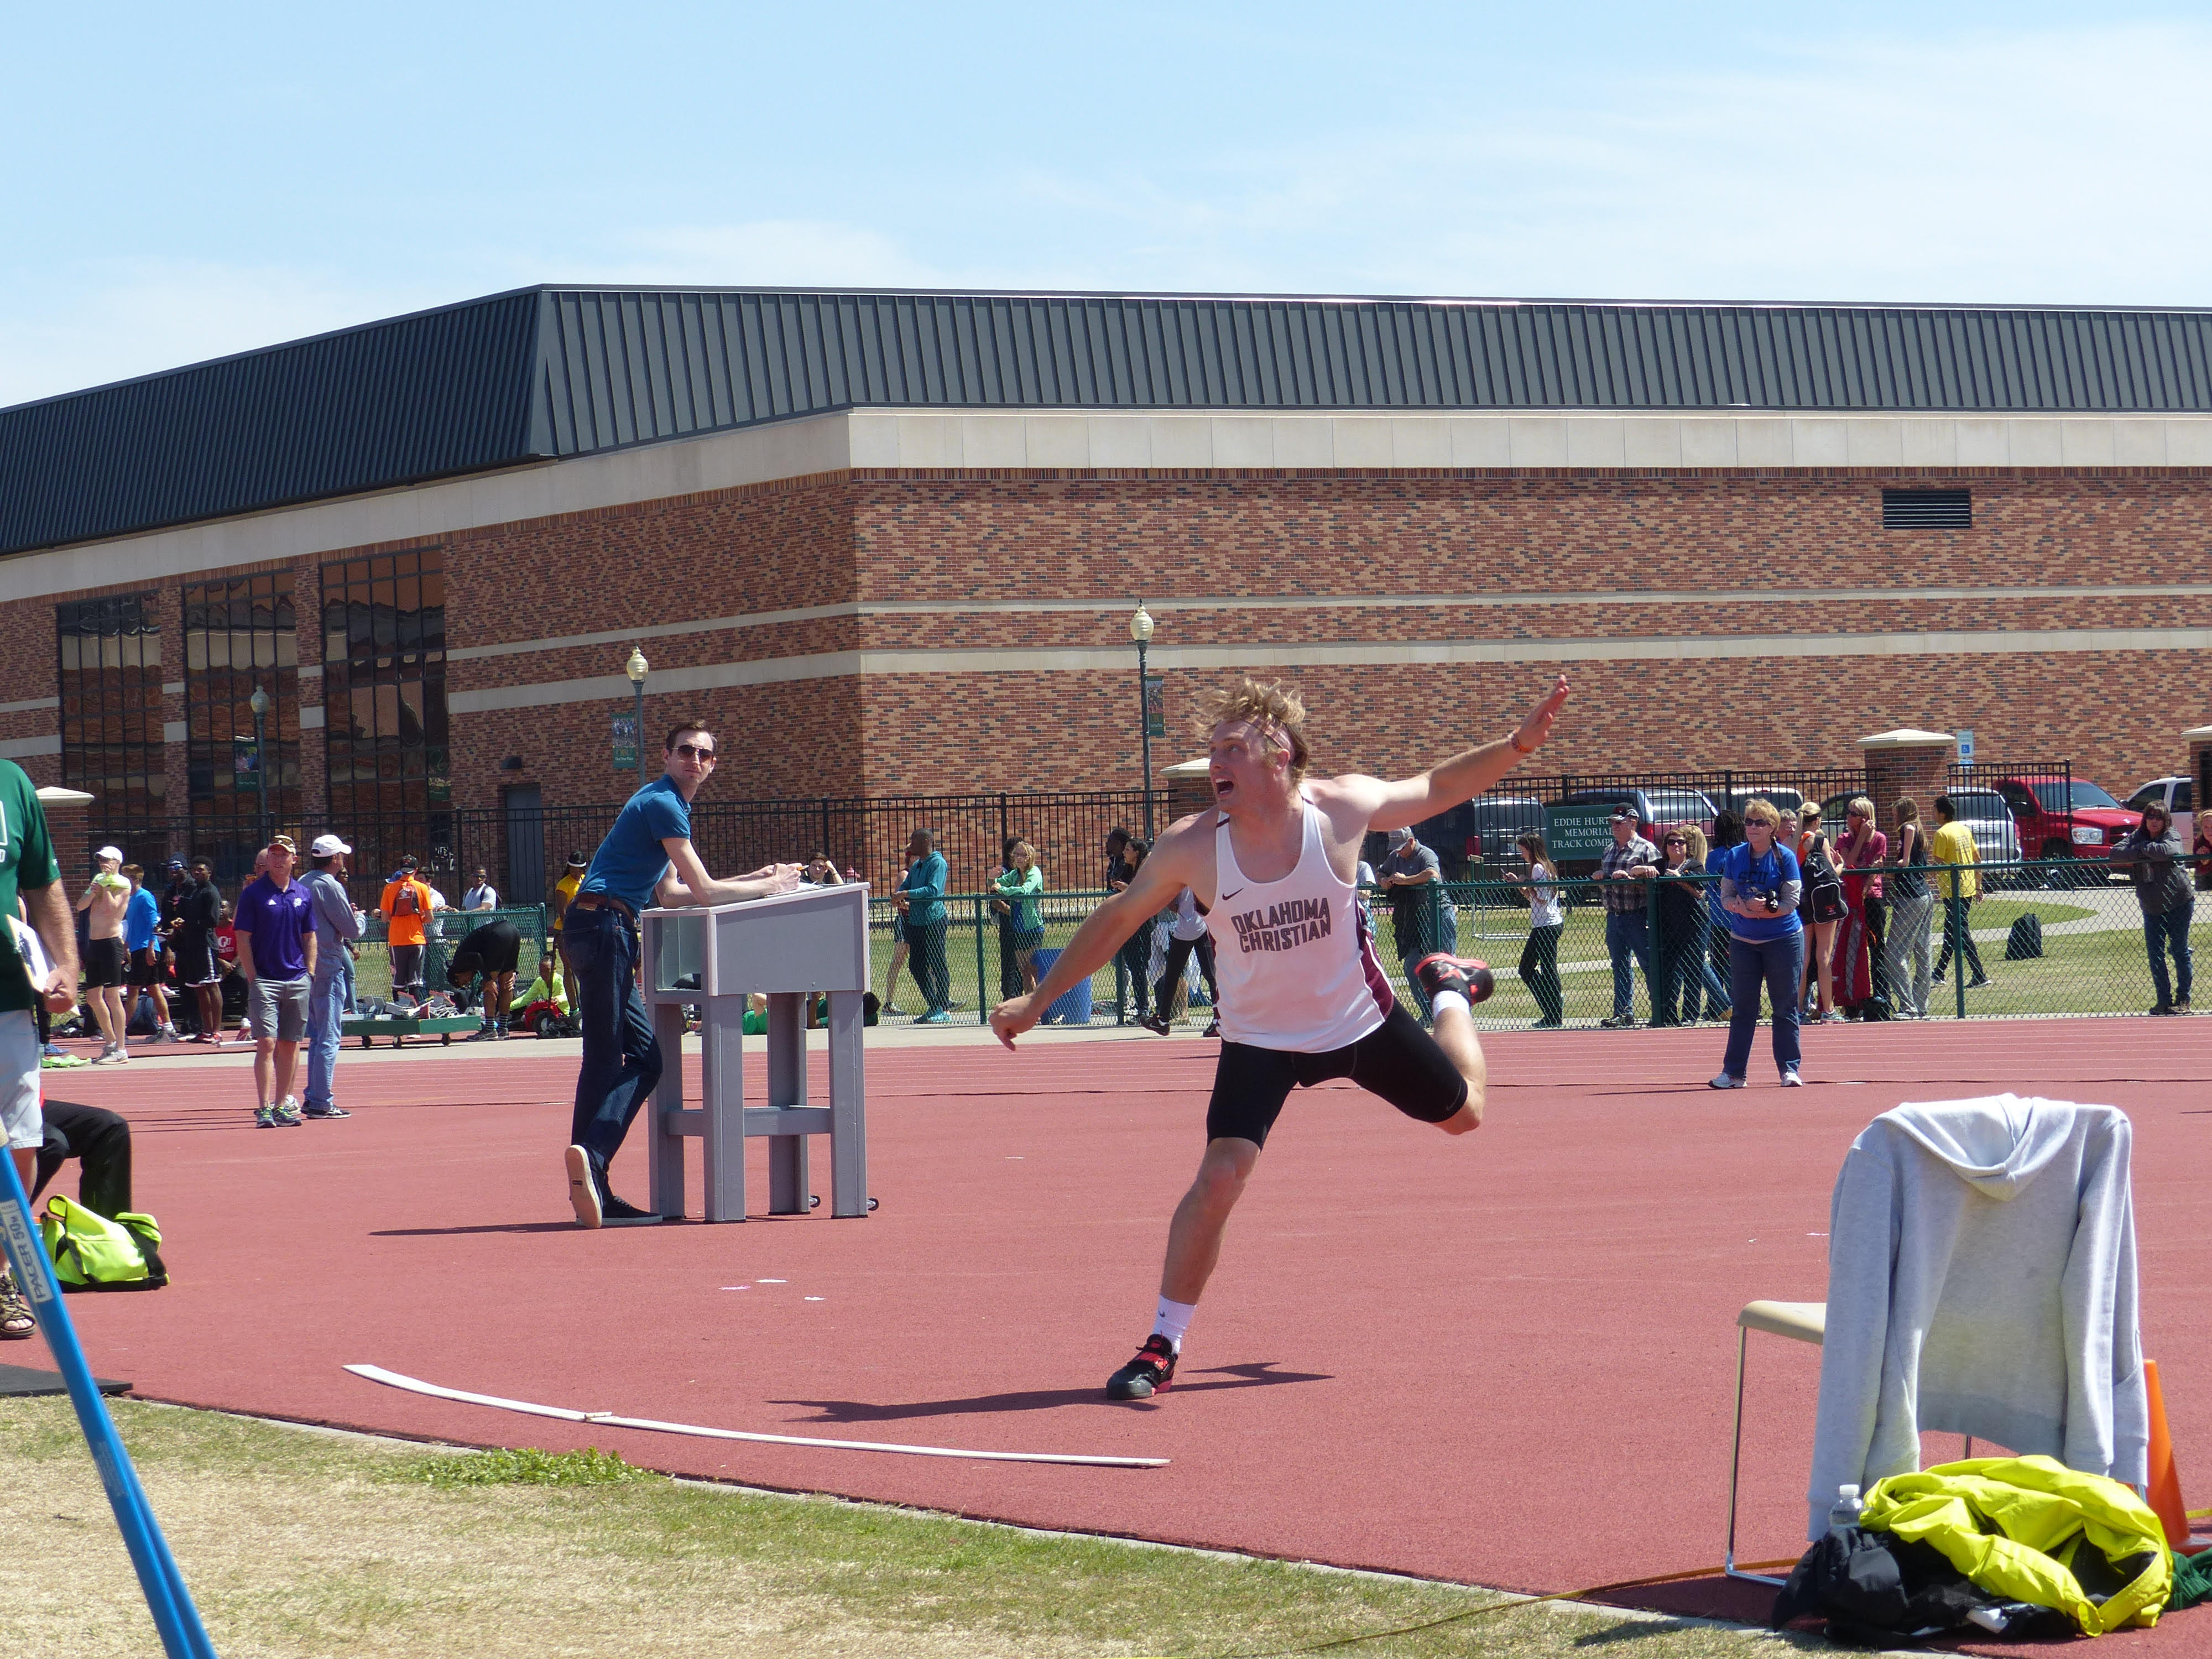 Austin Wallace took first place in the decathlon at the OBU Invitational on March 26. Photo by Murray Evans.